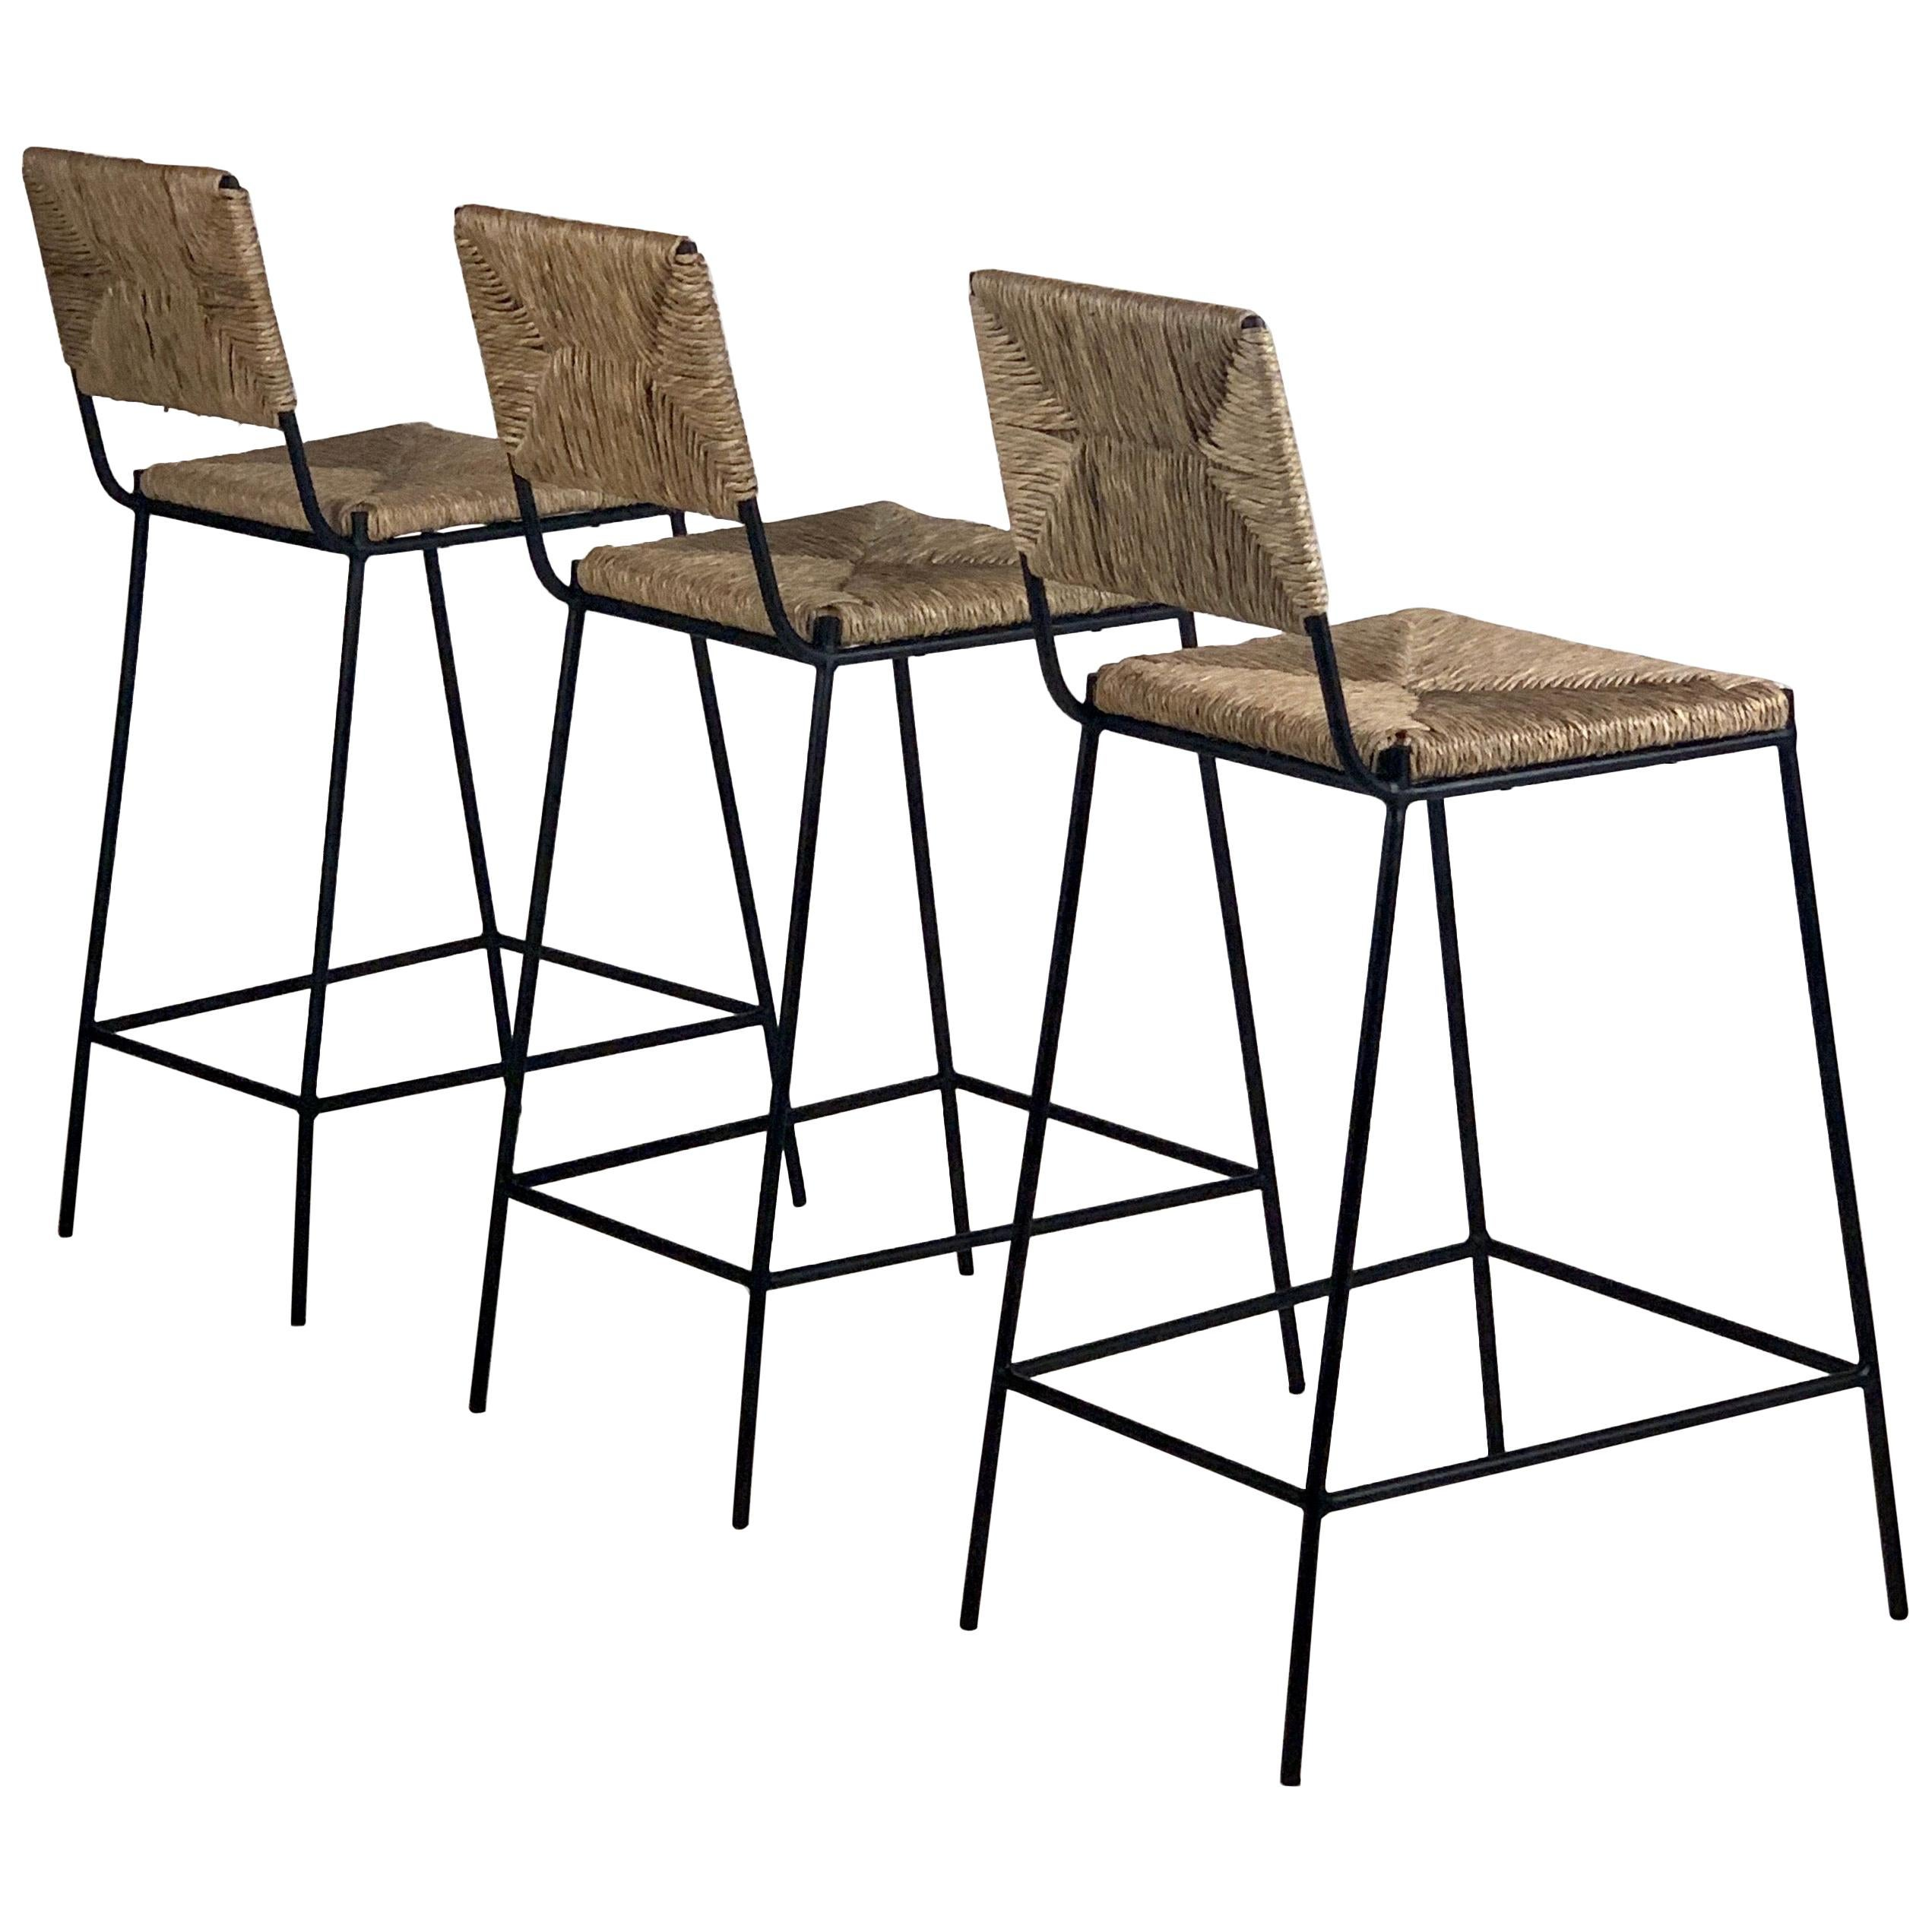 Set of 3 'Campagne' Counter Height Stools by Design Frères